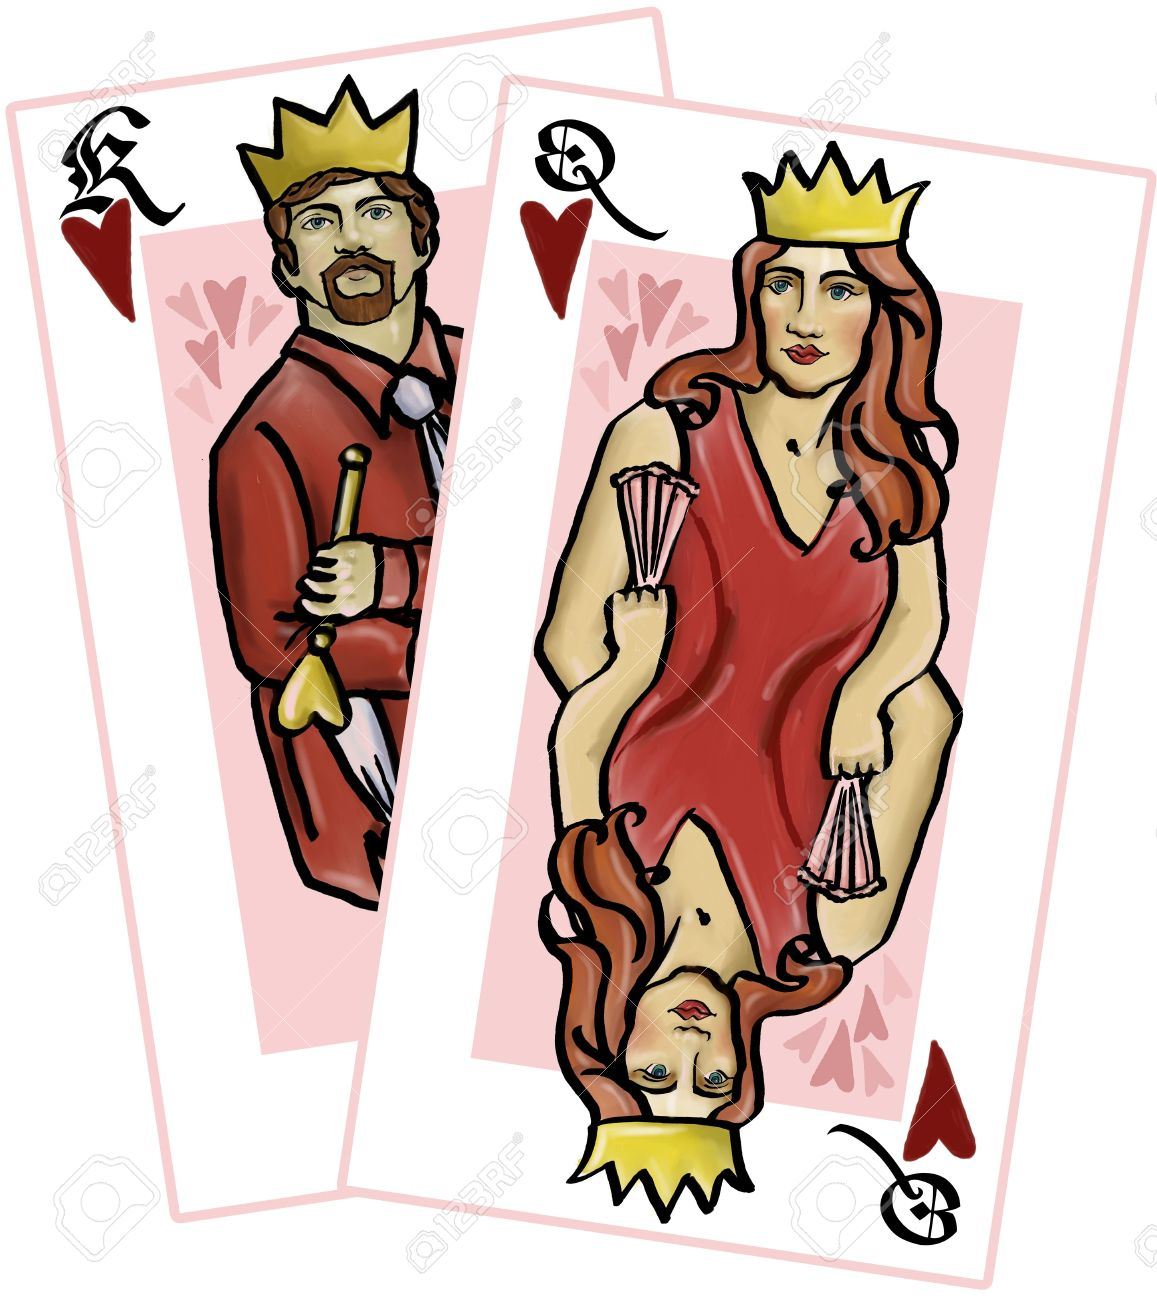 King and Queen of Hearts playing card illustration Stock Illustration - 303238